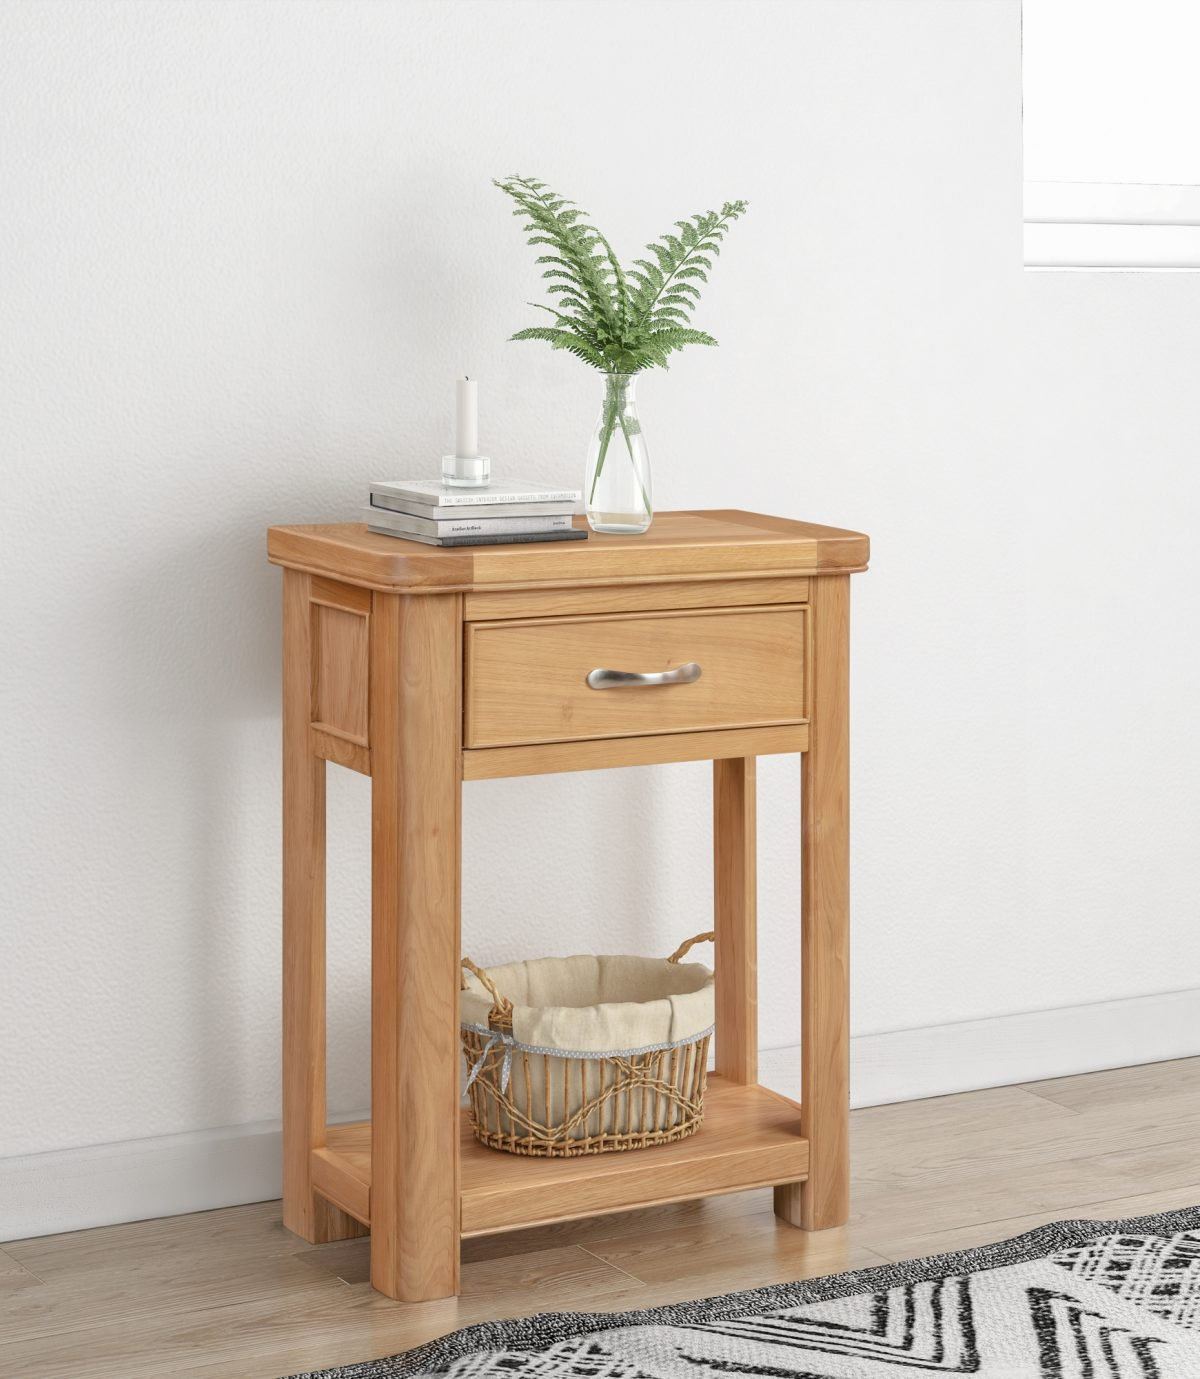 110 14 Chatsworth Small Console with 1 Drawer Feature